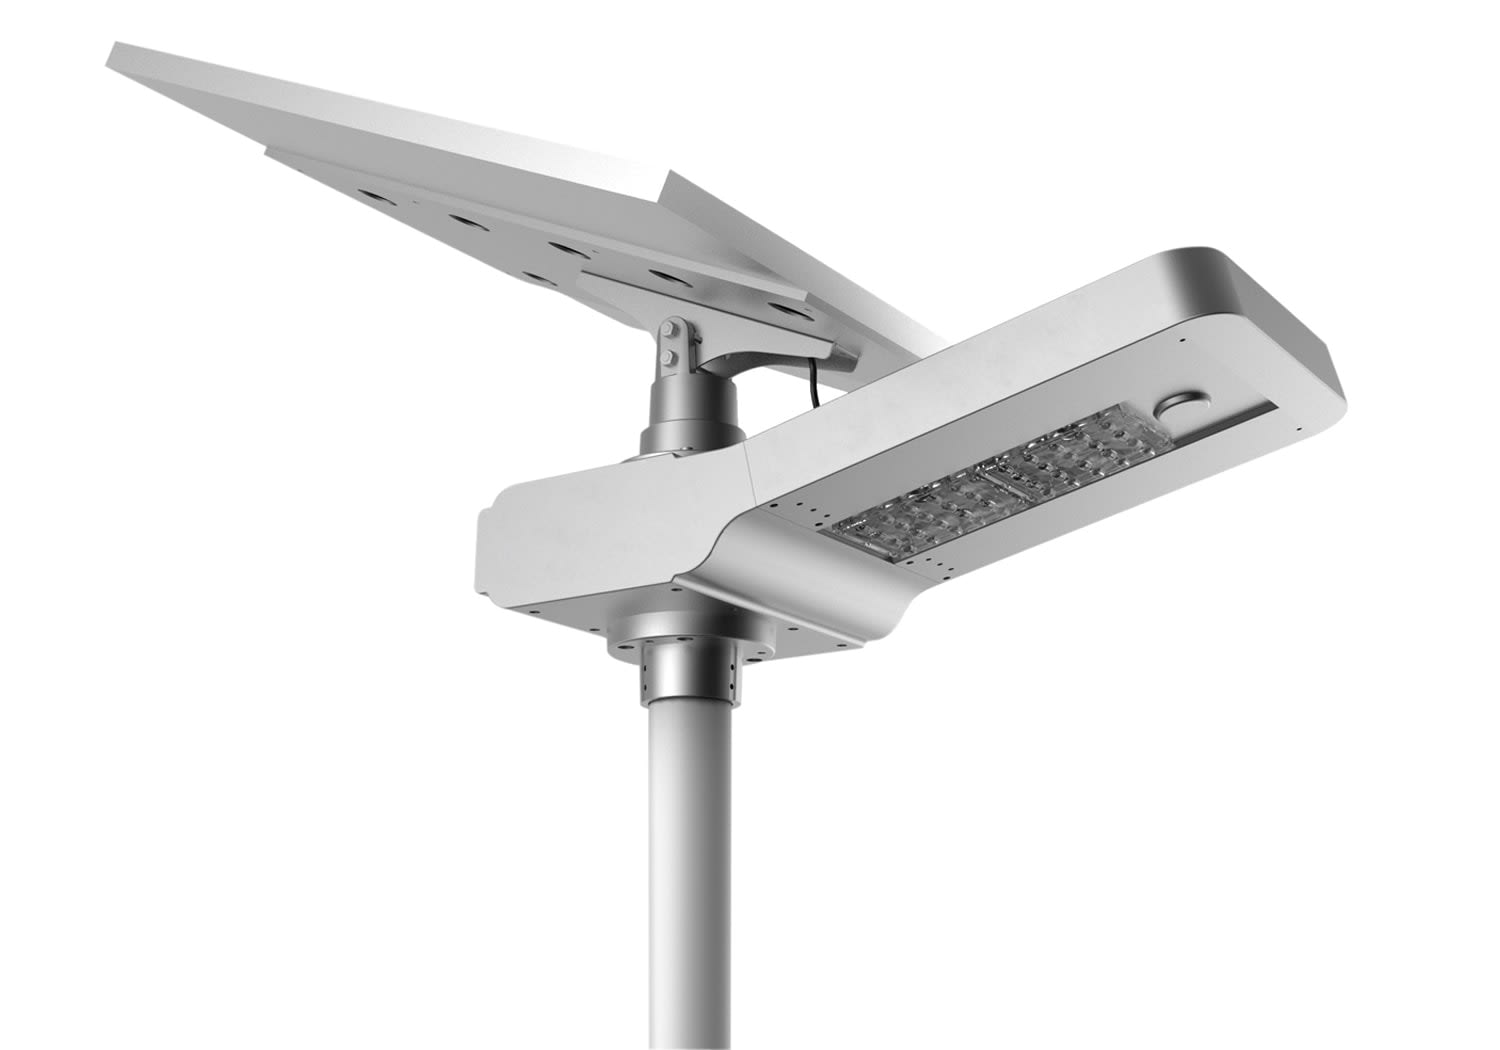 SolarPower Solar Luminaire with Adjustable Panel